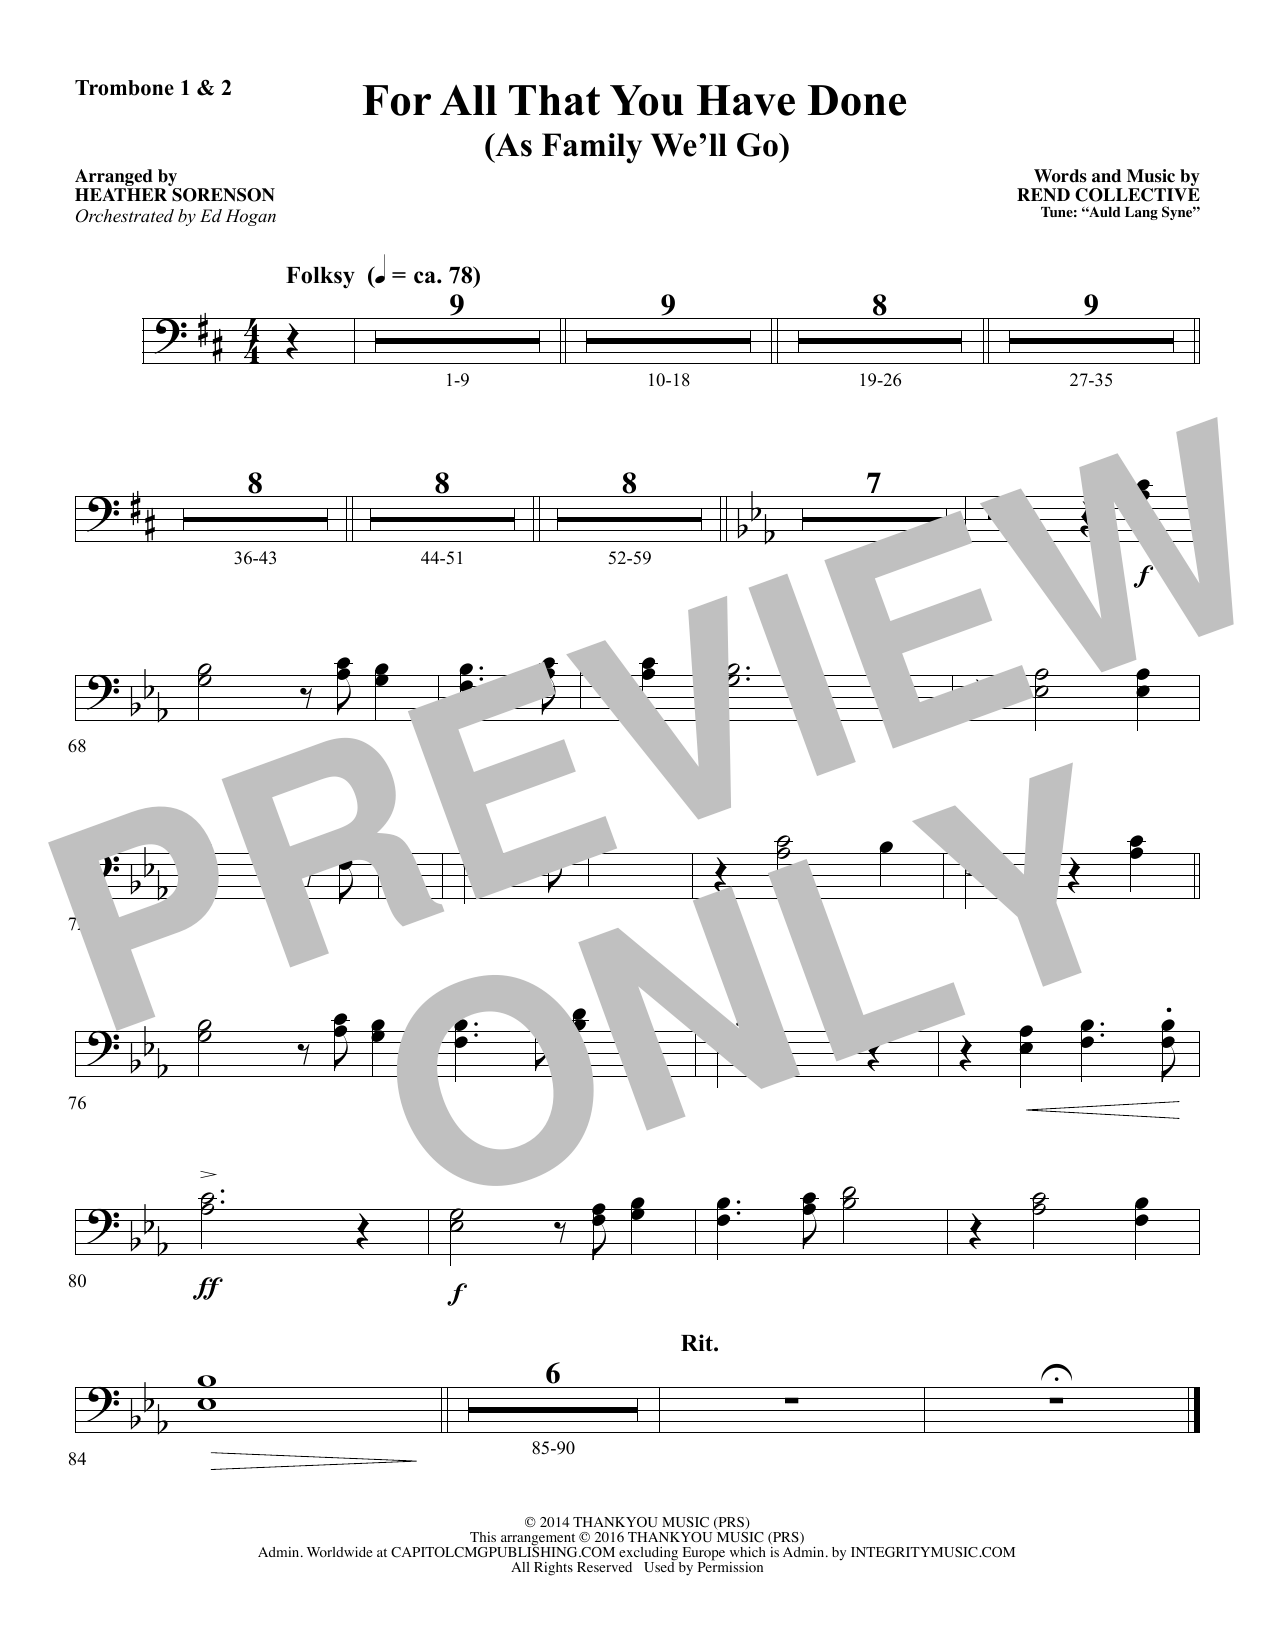 For All That You Have Done - Trombone 1 & 2 Sheet Music